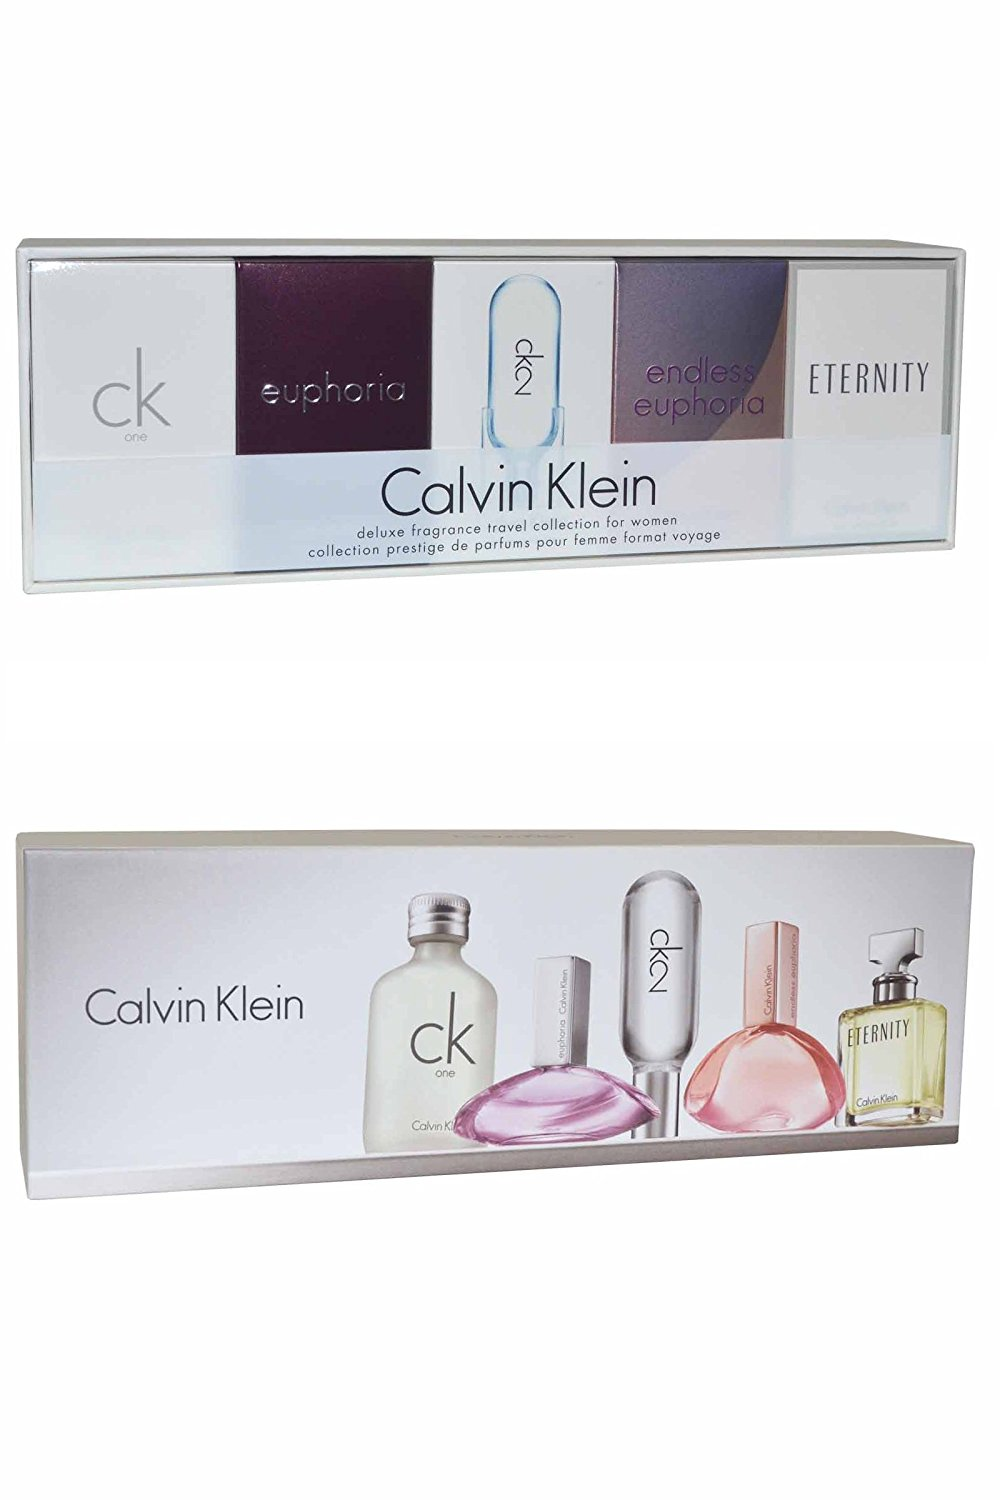 81399acb5134 Calvin Klein Women s Mini Gift Set 15ml Obsession EDP + 15ml Euphoria EDP +  15ml Eternity EDP + 15ml Endless Euphoria EDP